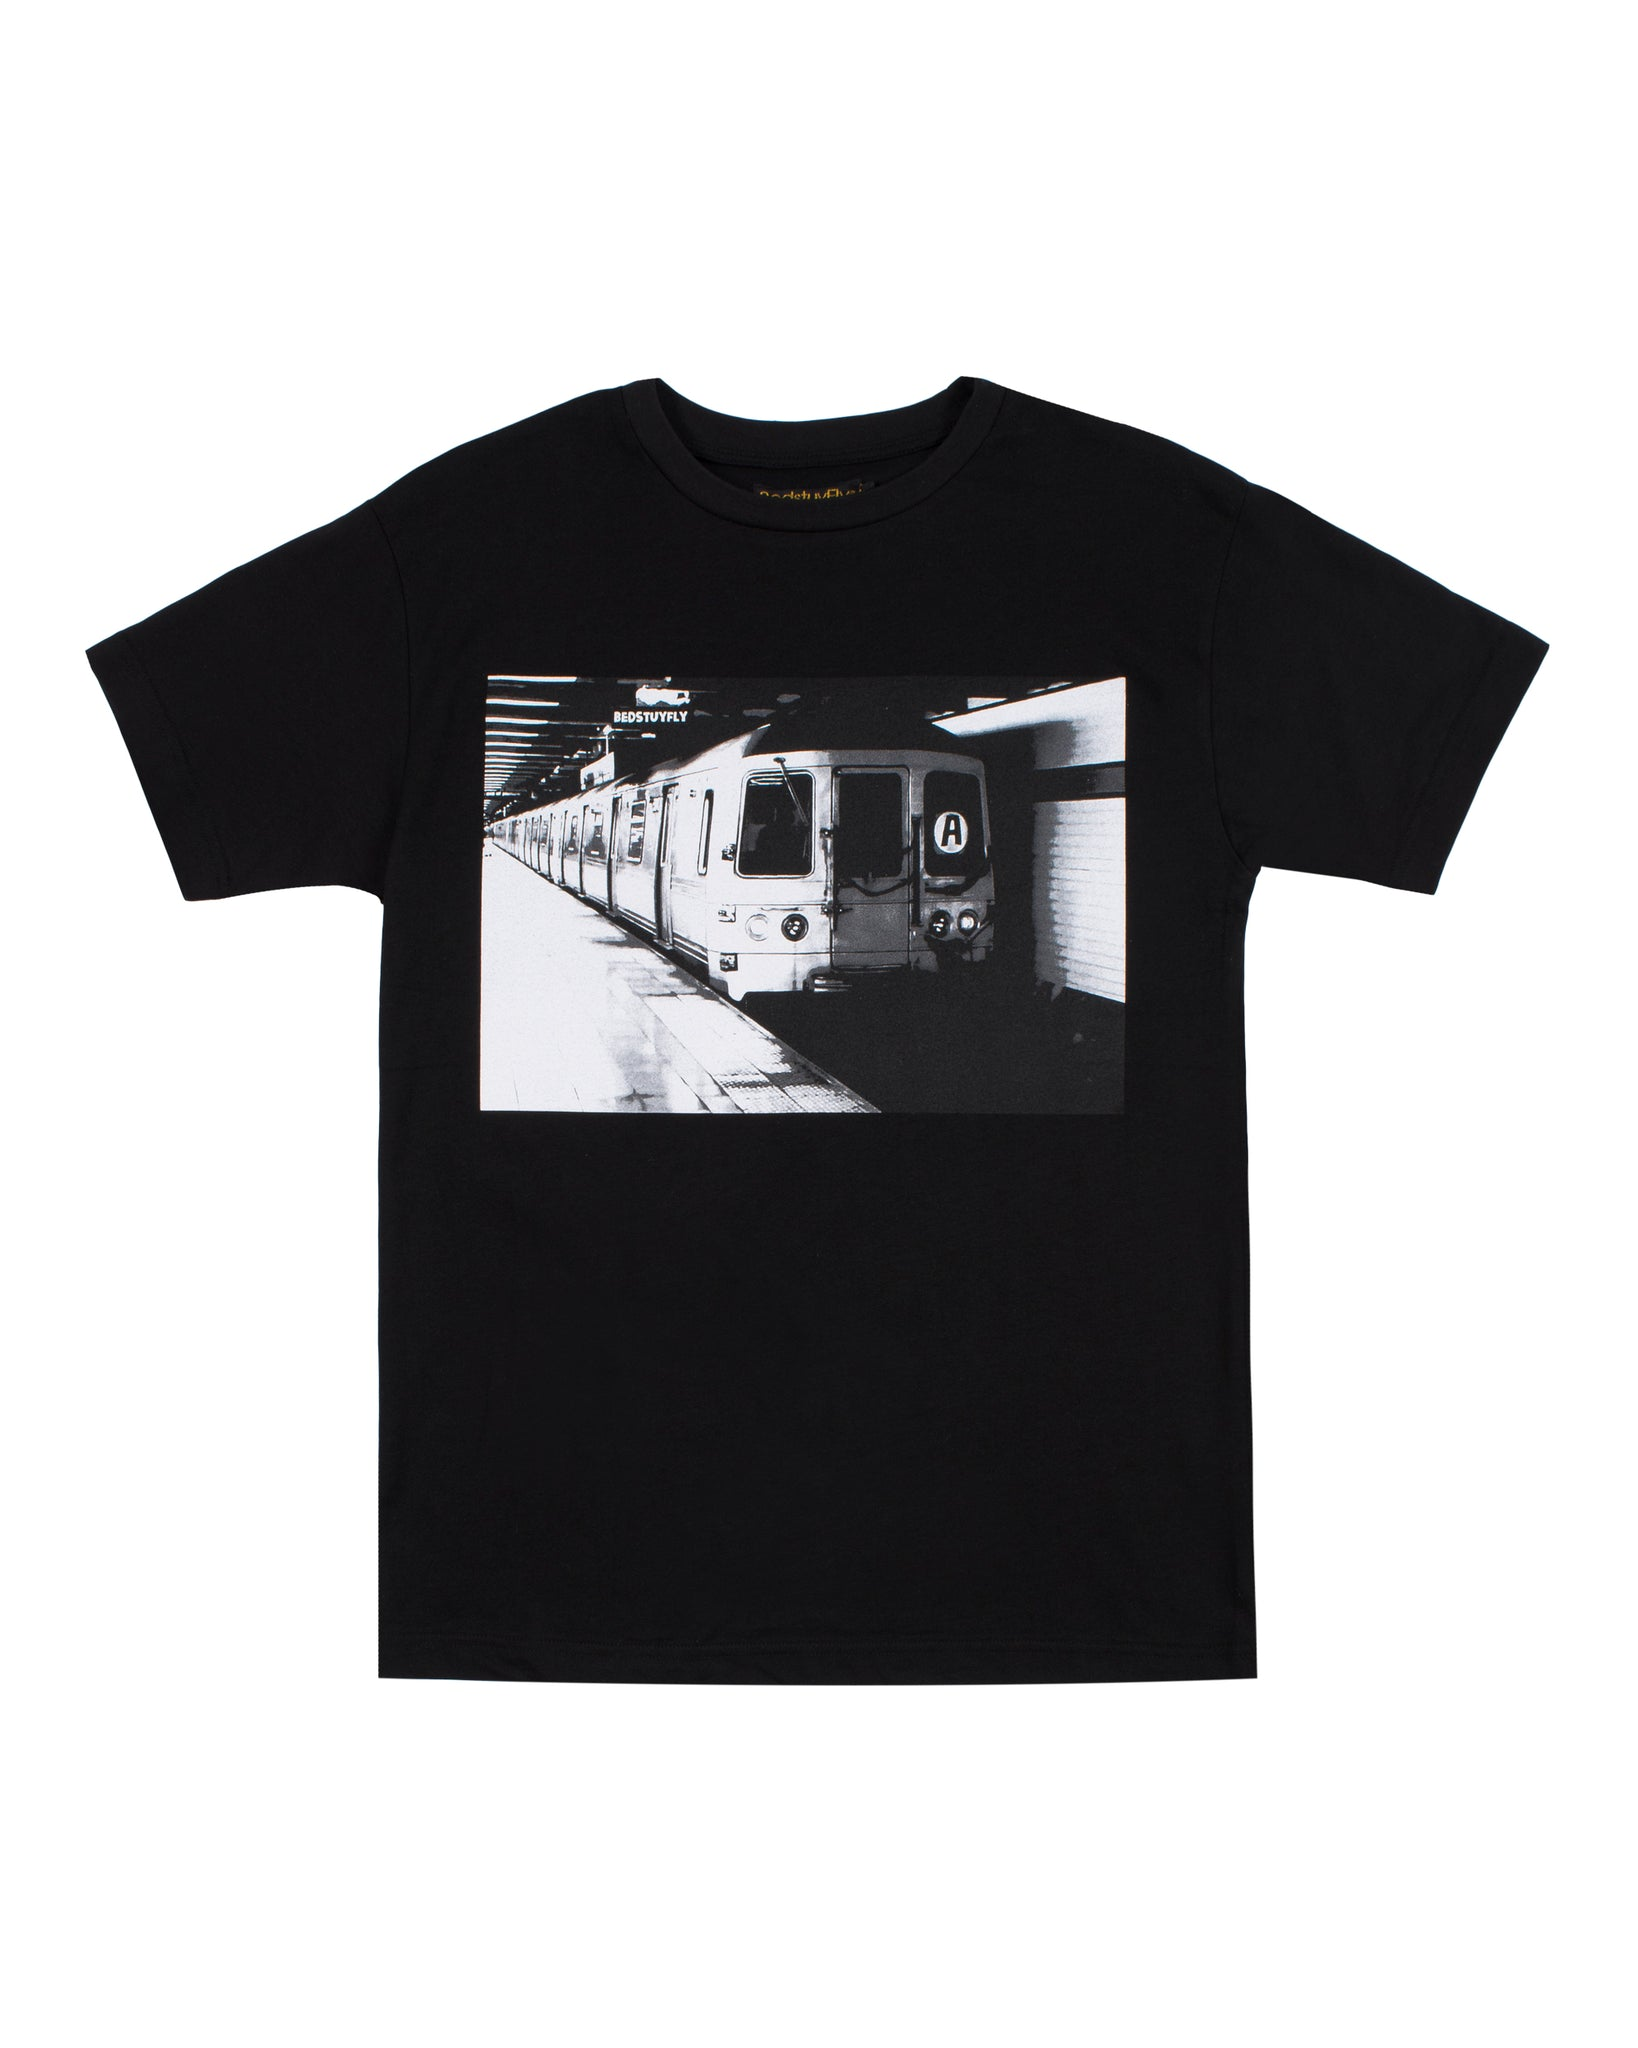 A-Train T-Shirt (Black)